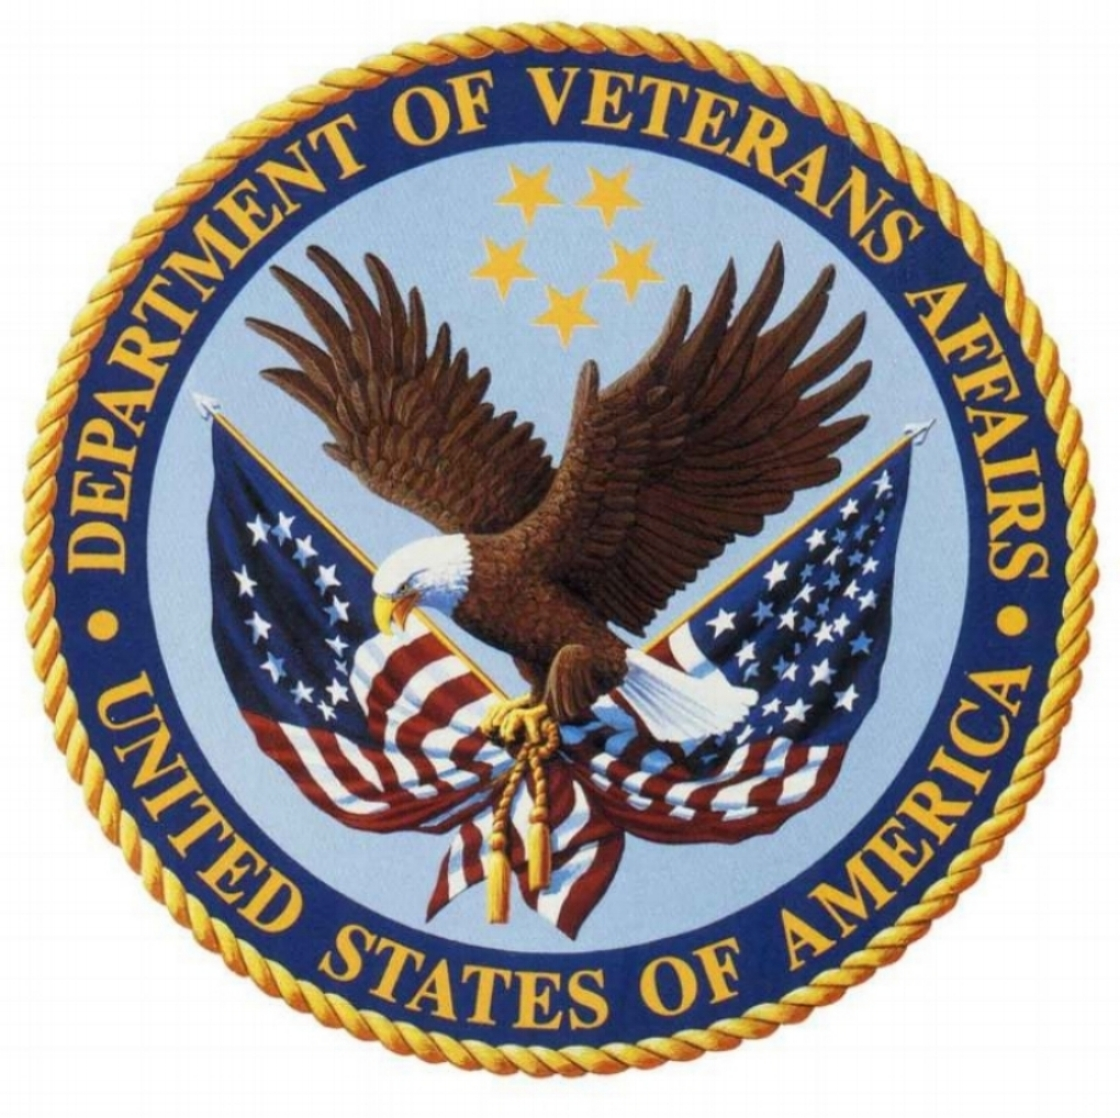 Dept of Vet Affairs.jpg